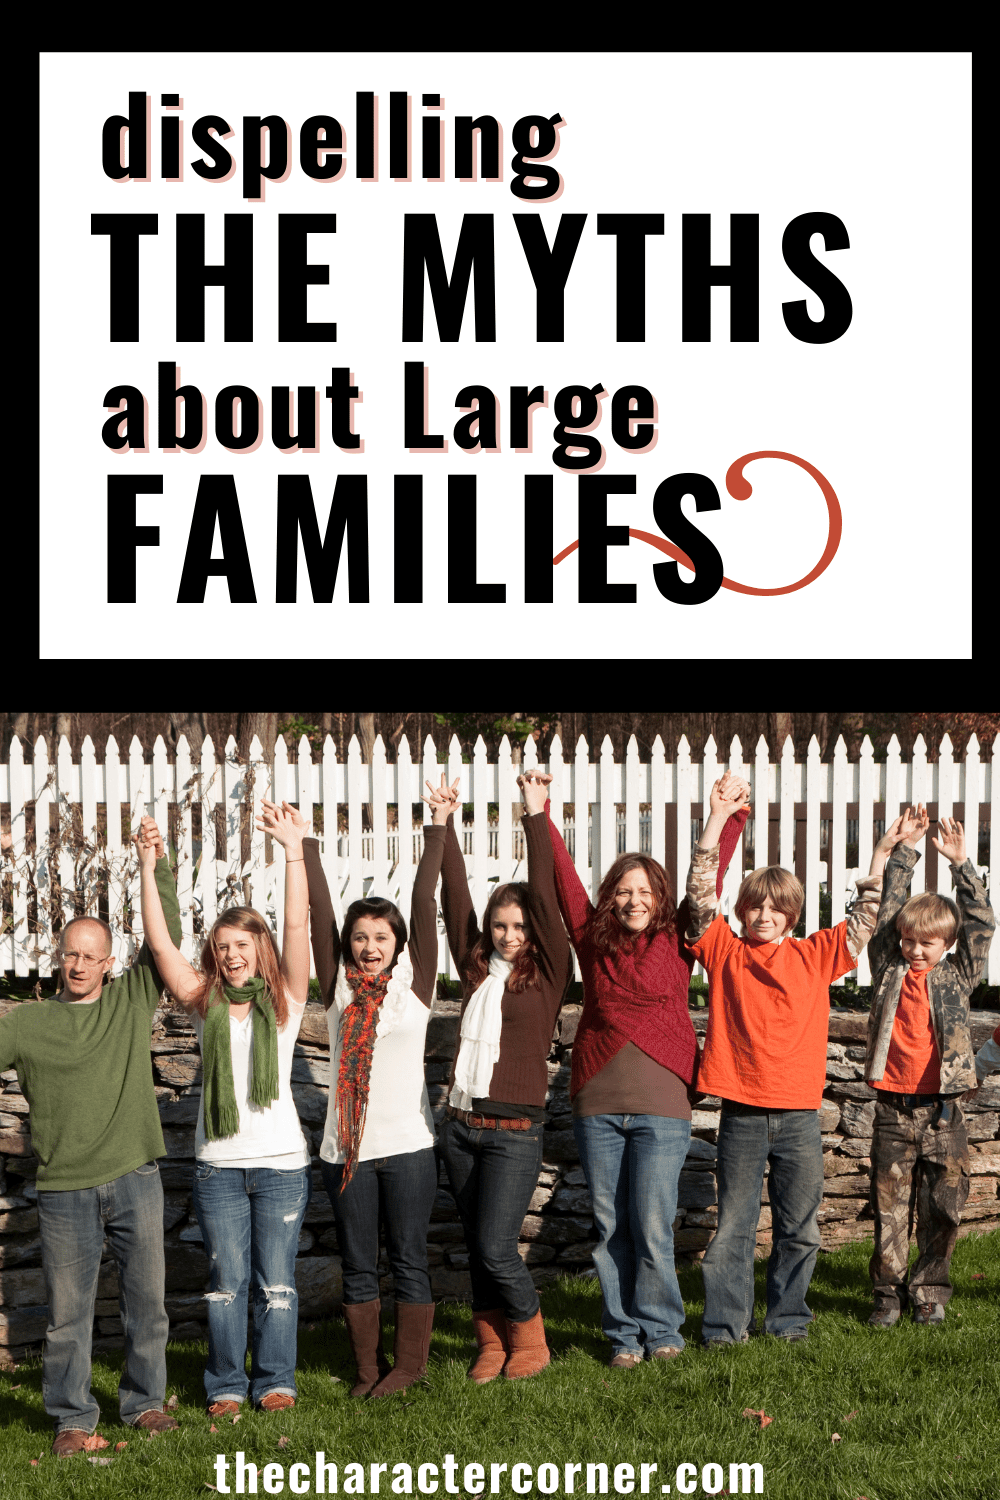 Large family outside together in a line text on image reads dispelling the myths about large families the character corner.com